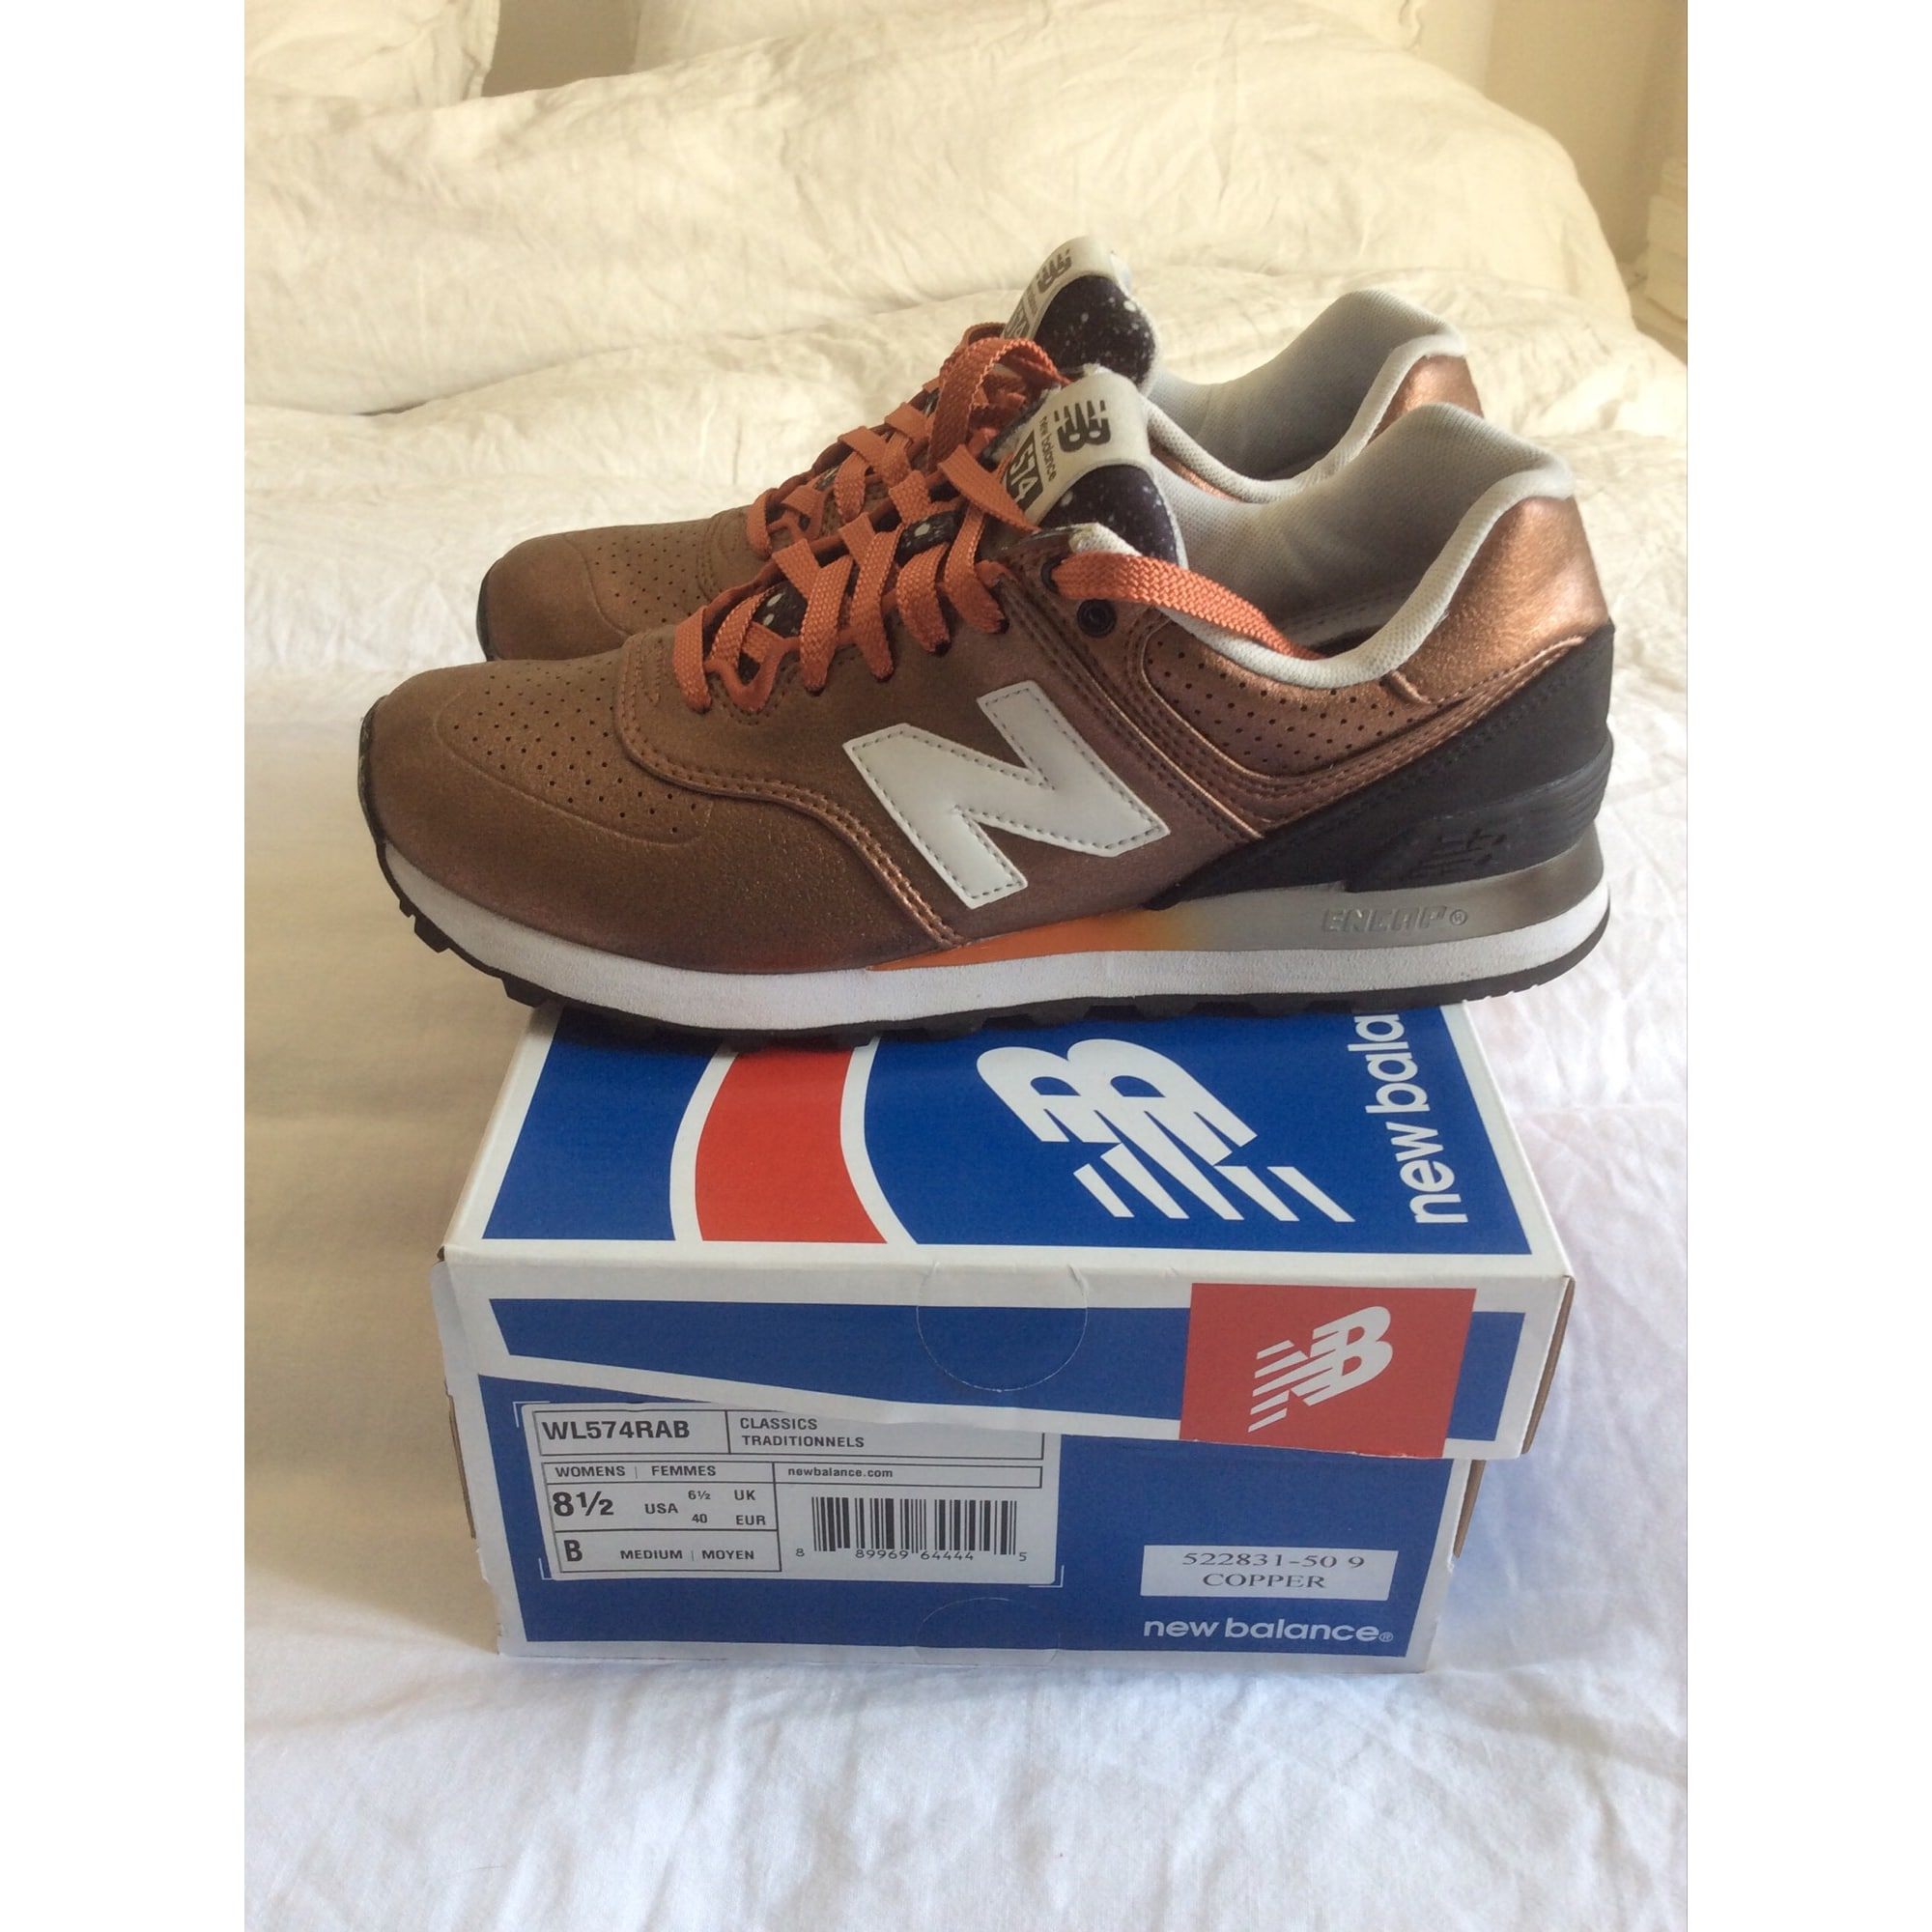 2e928e337416 Baskets NEW BALANCE Doré, bronze, cuivre